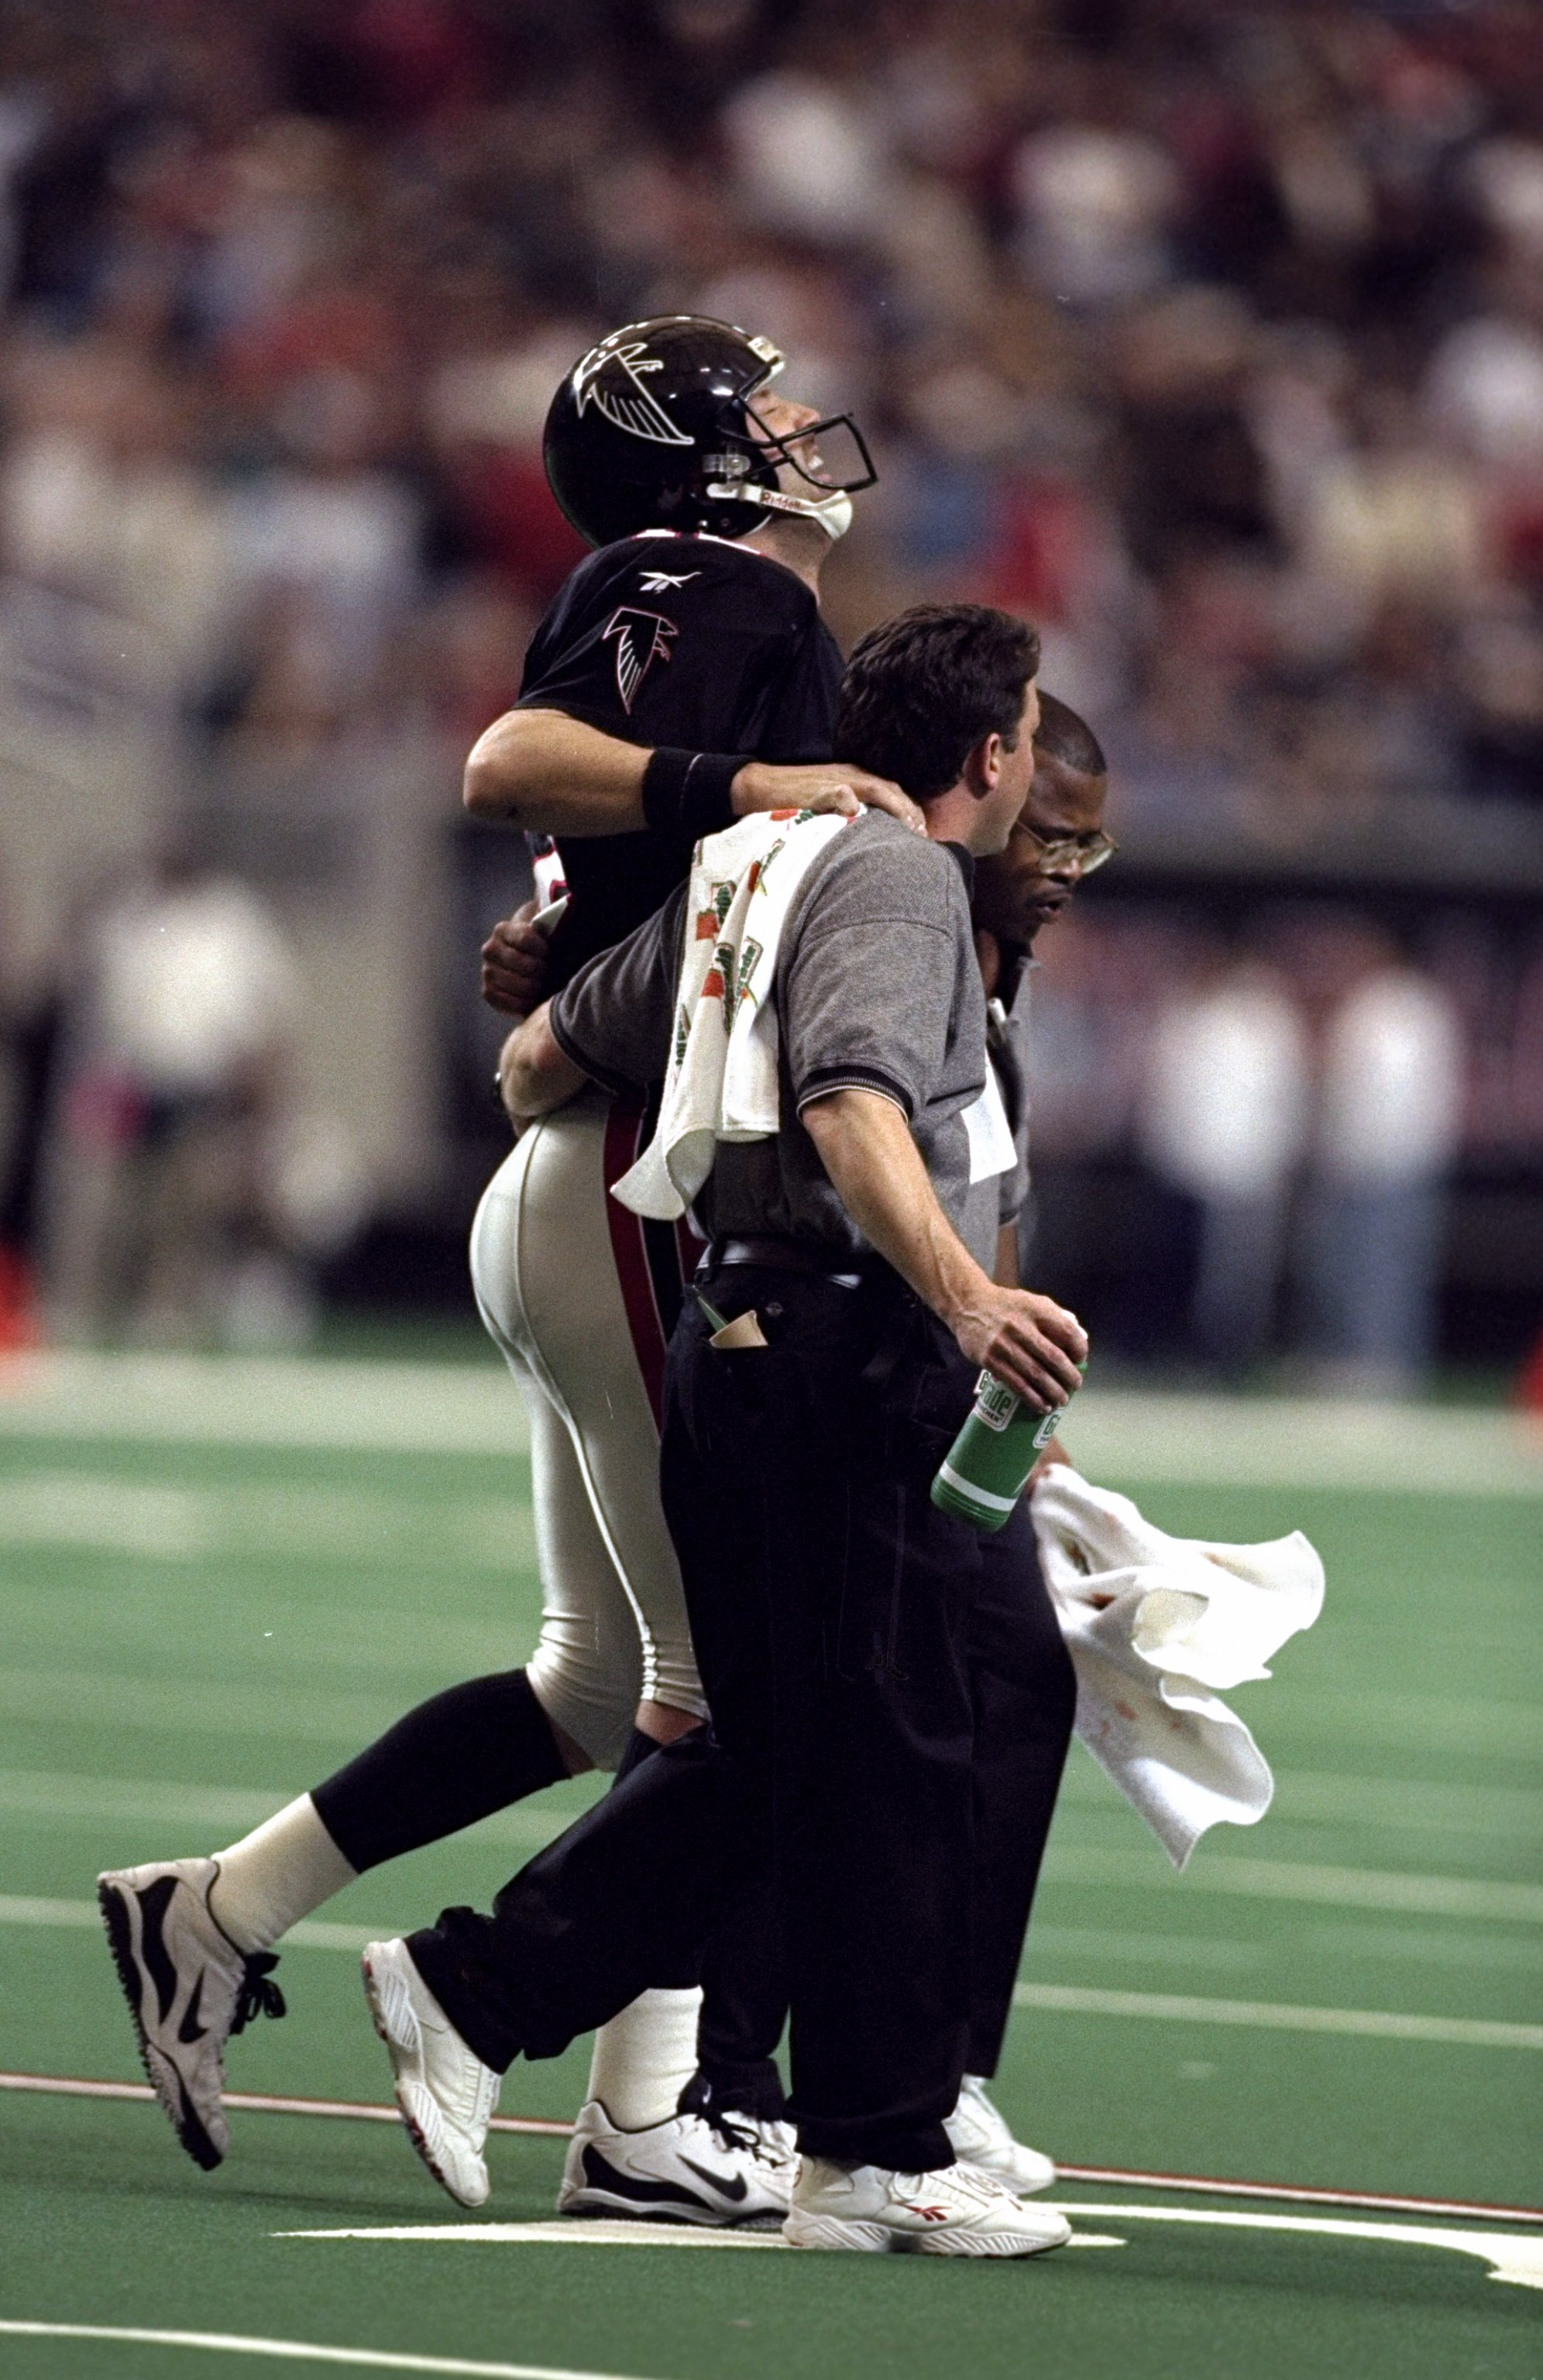 27 Dec 1998: Chris Chandler #12 of the Atlanta Falcons is helped off the field during the game against the Miami Dolphins at the Georgia Dome in Atlanta, Georgia. The Falcons defeated the Dolphins 38-16.